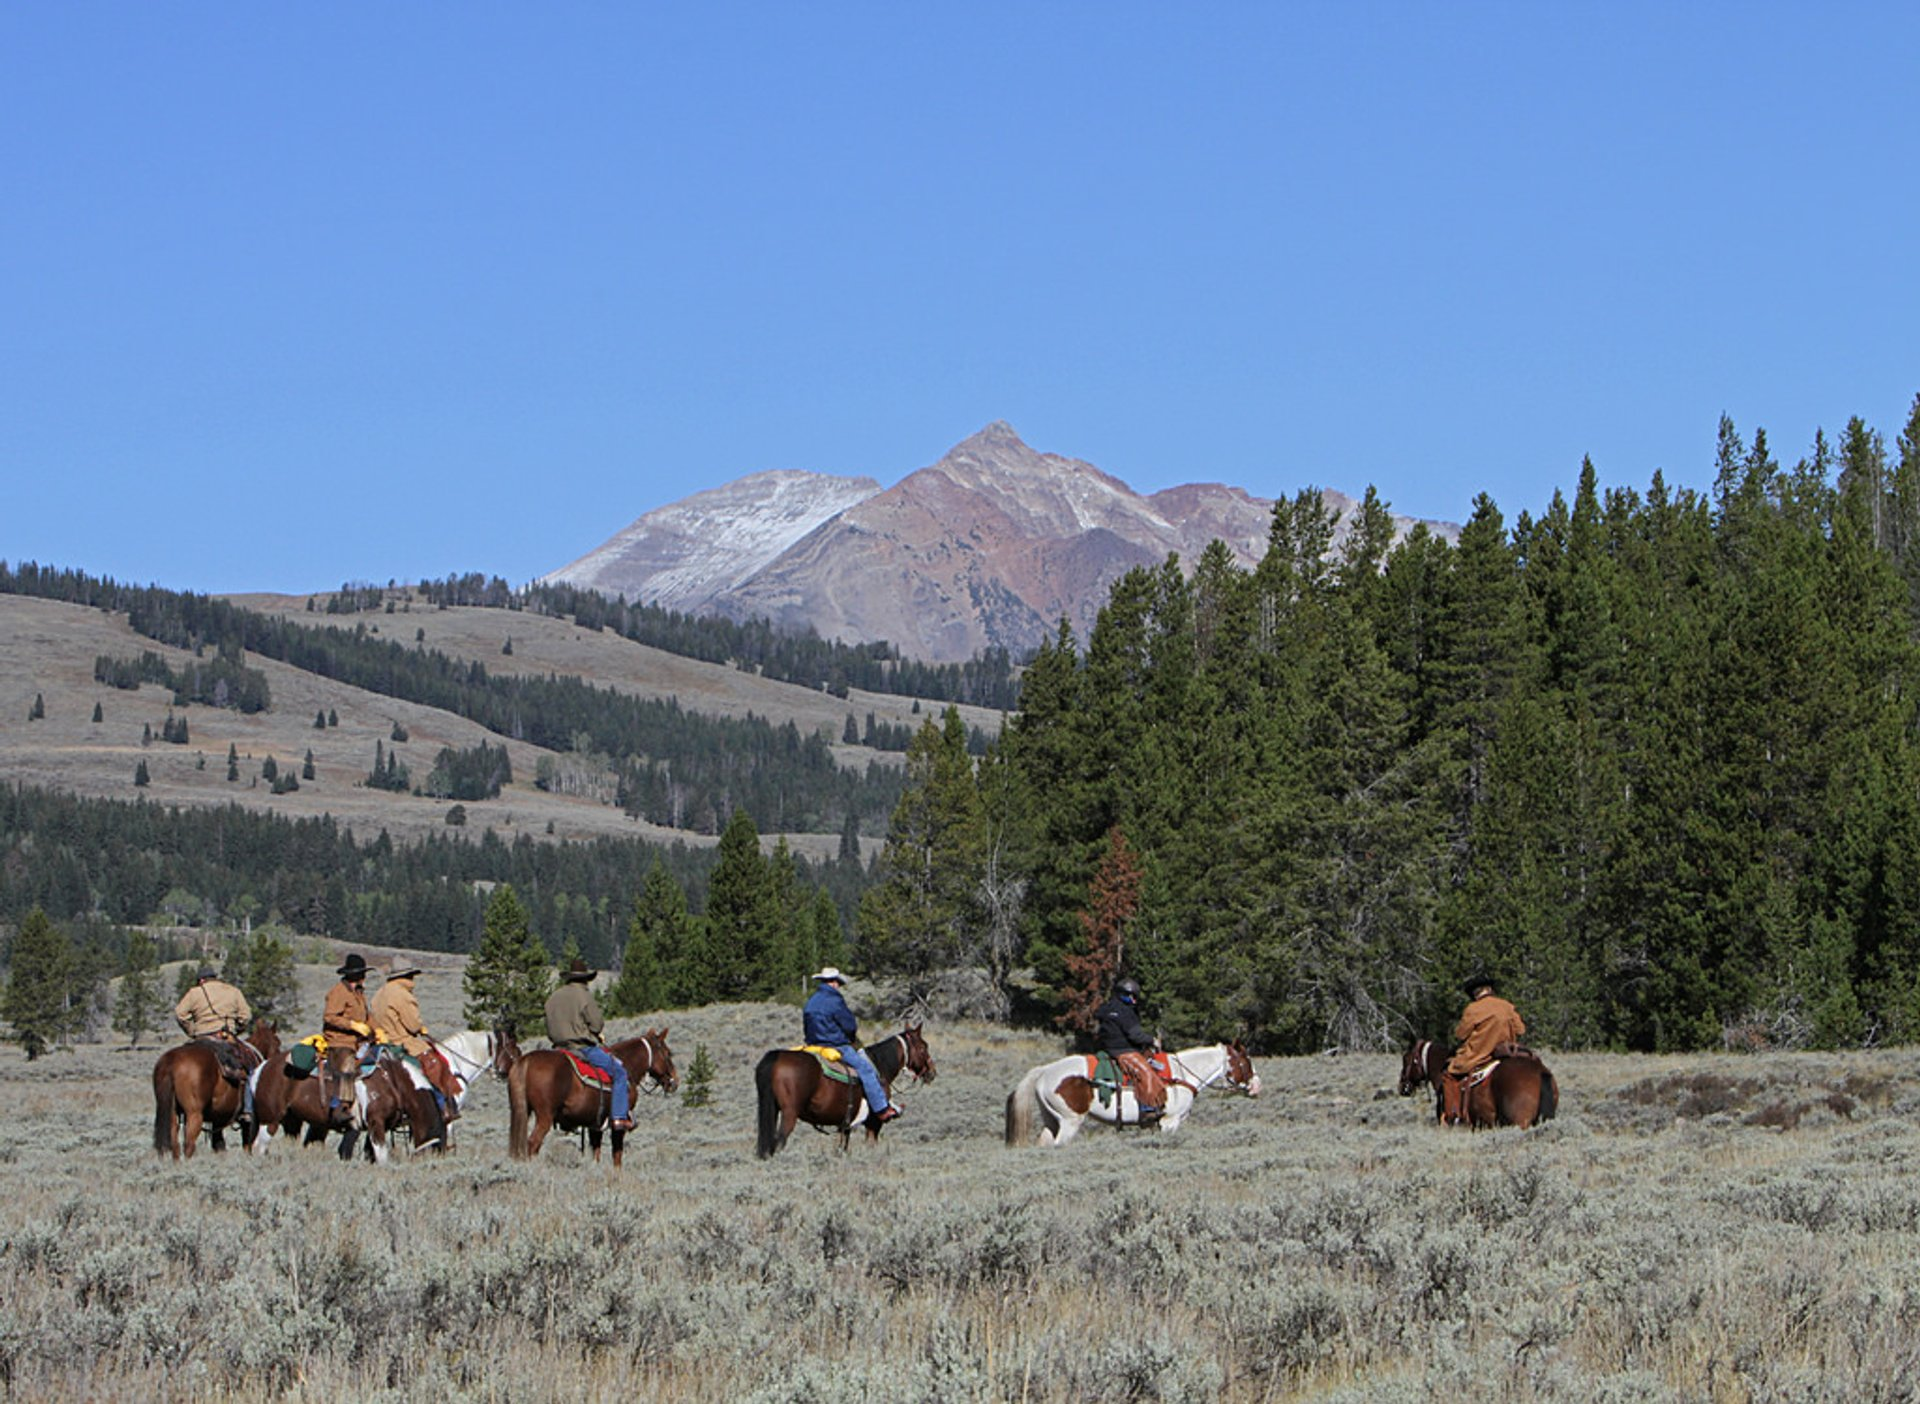 Horse trip heading out from Glen Creek trailhead, Yellowstone National Park, Wyoming, USA 2020